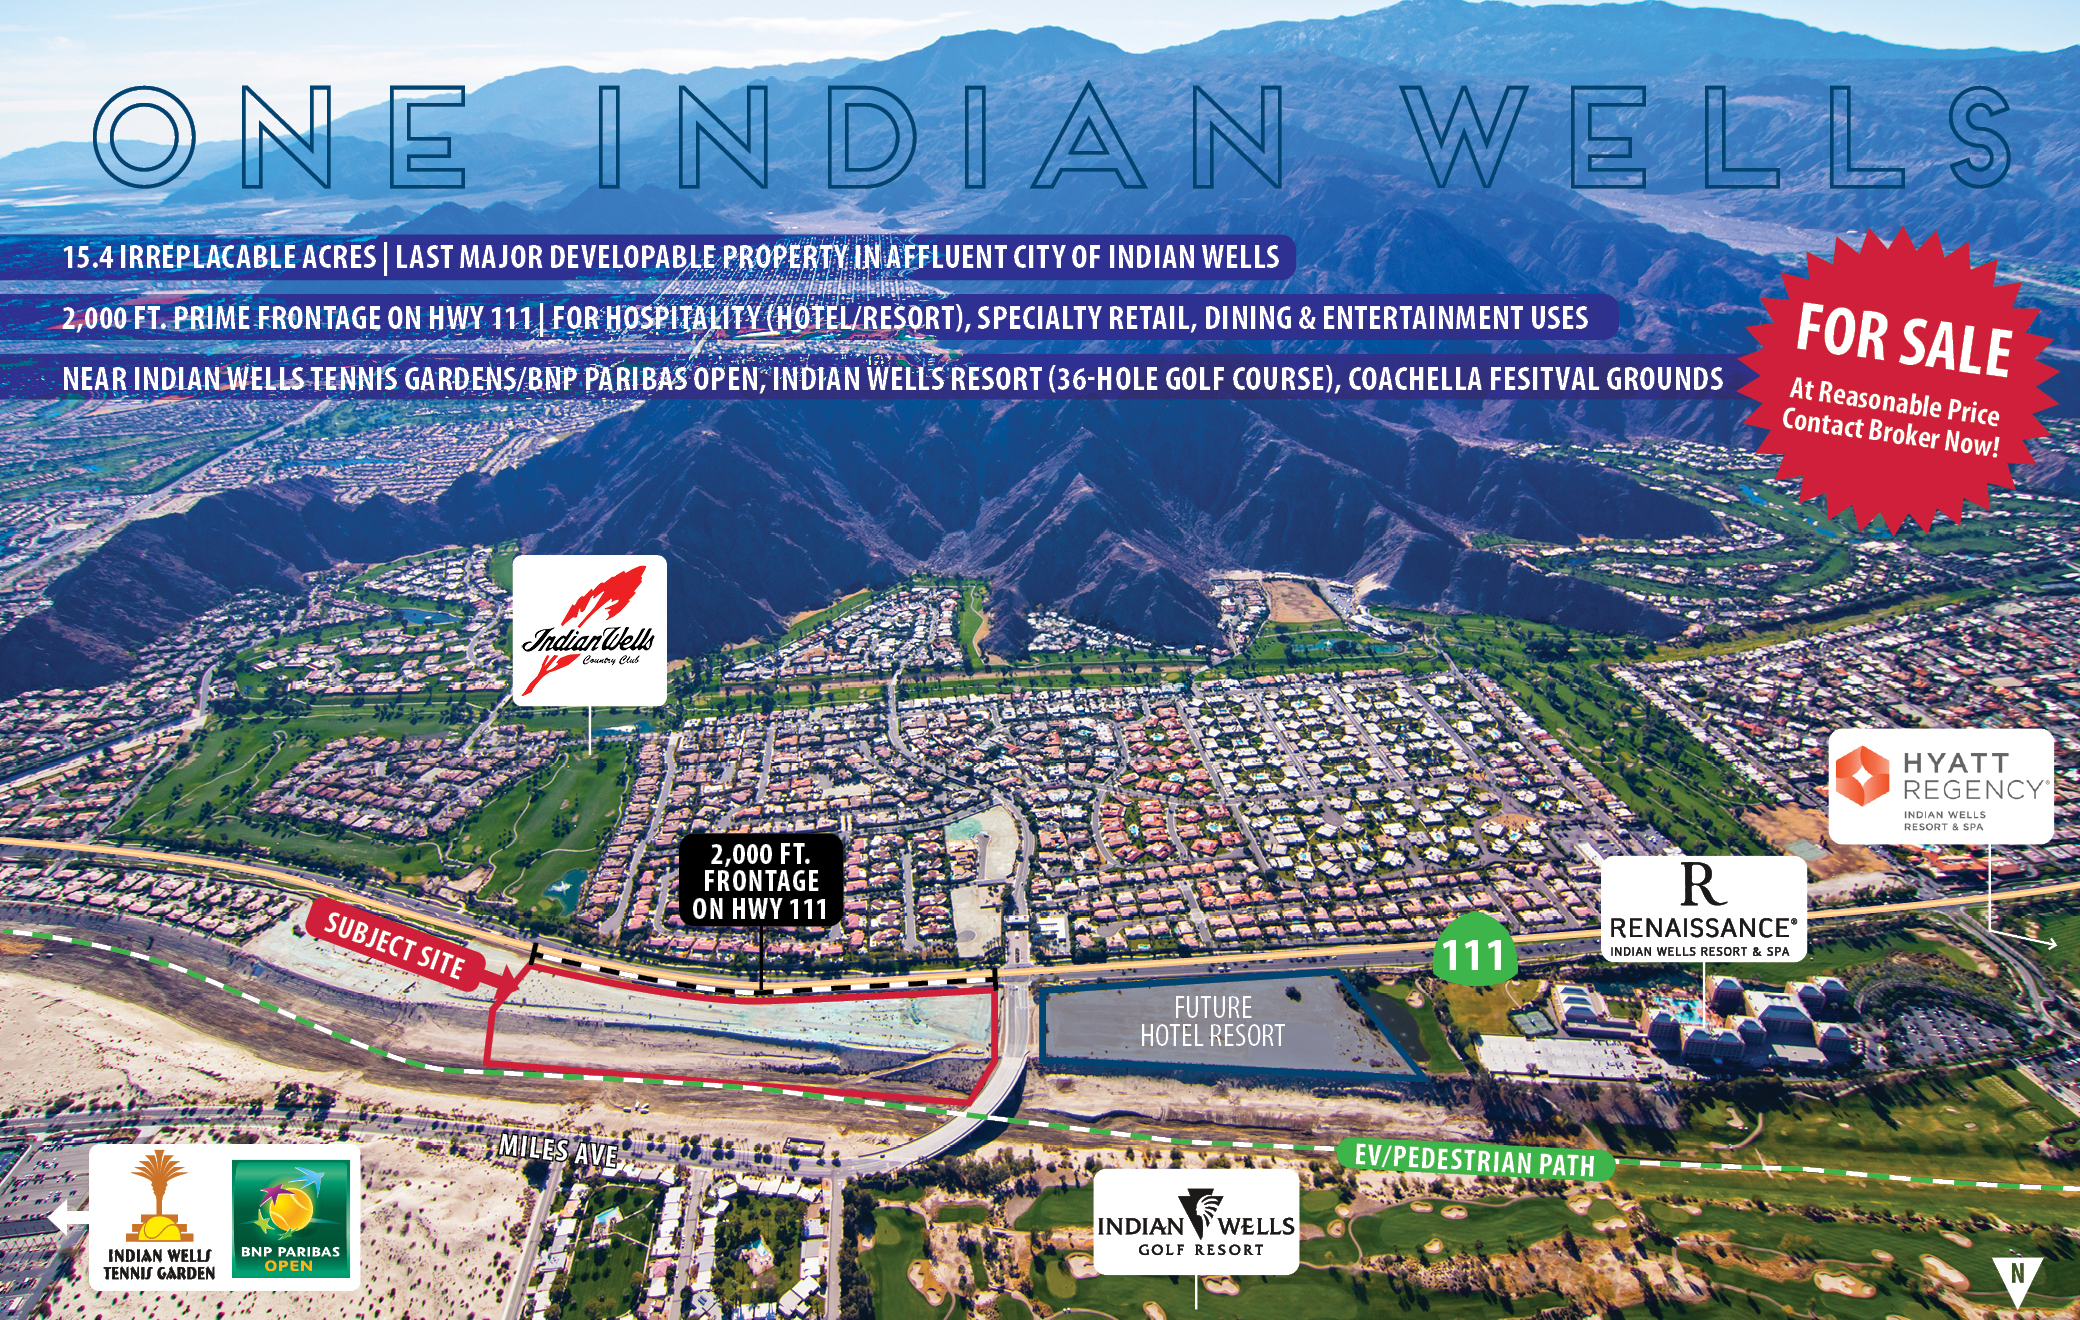 OneIndianWells_WEBSITE